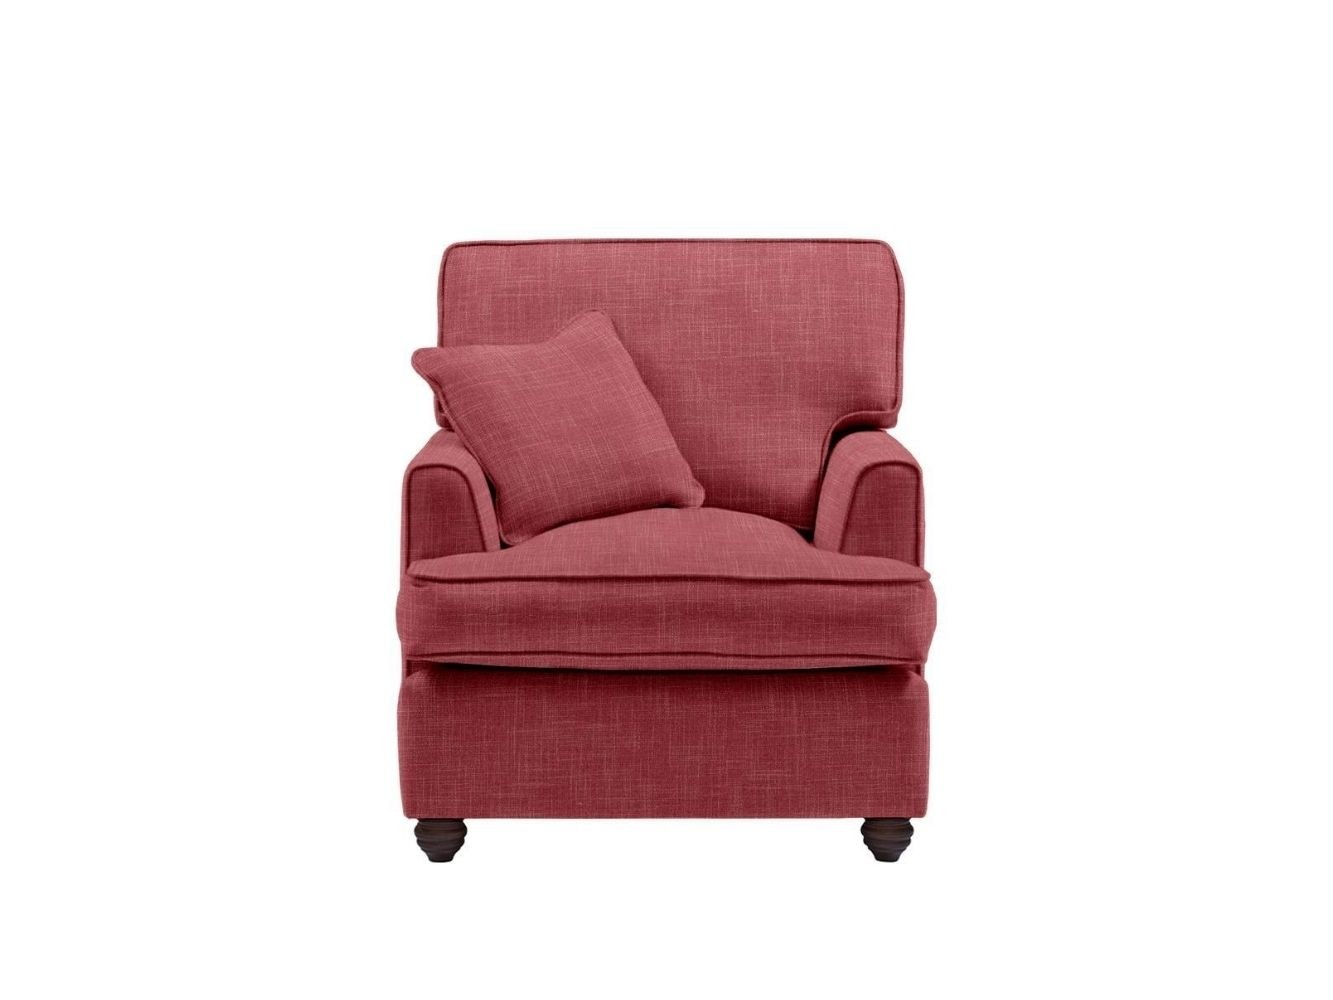 This is how I look in Linen Cranberry with a siliconized hollow fibre seat cushion